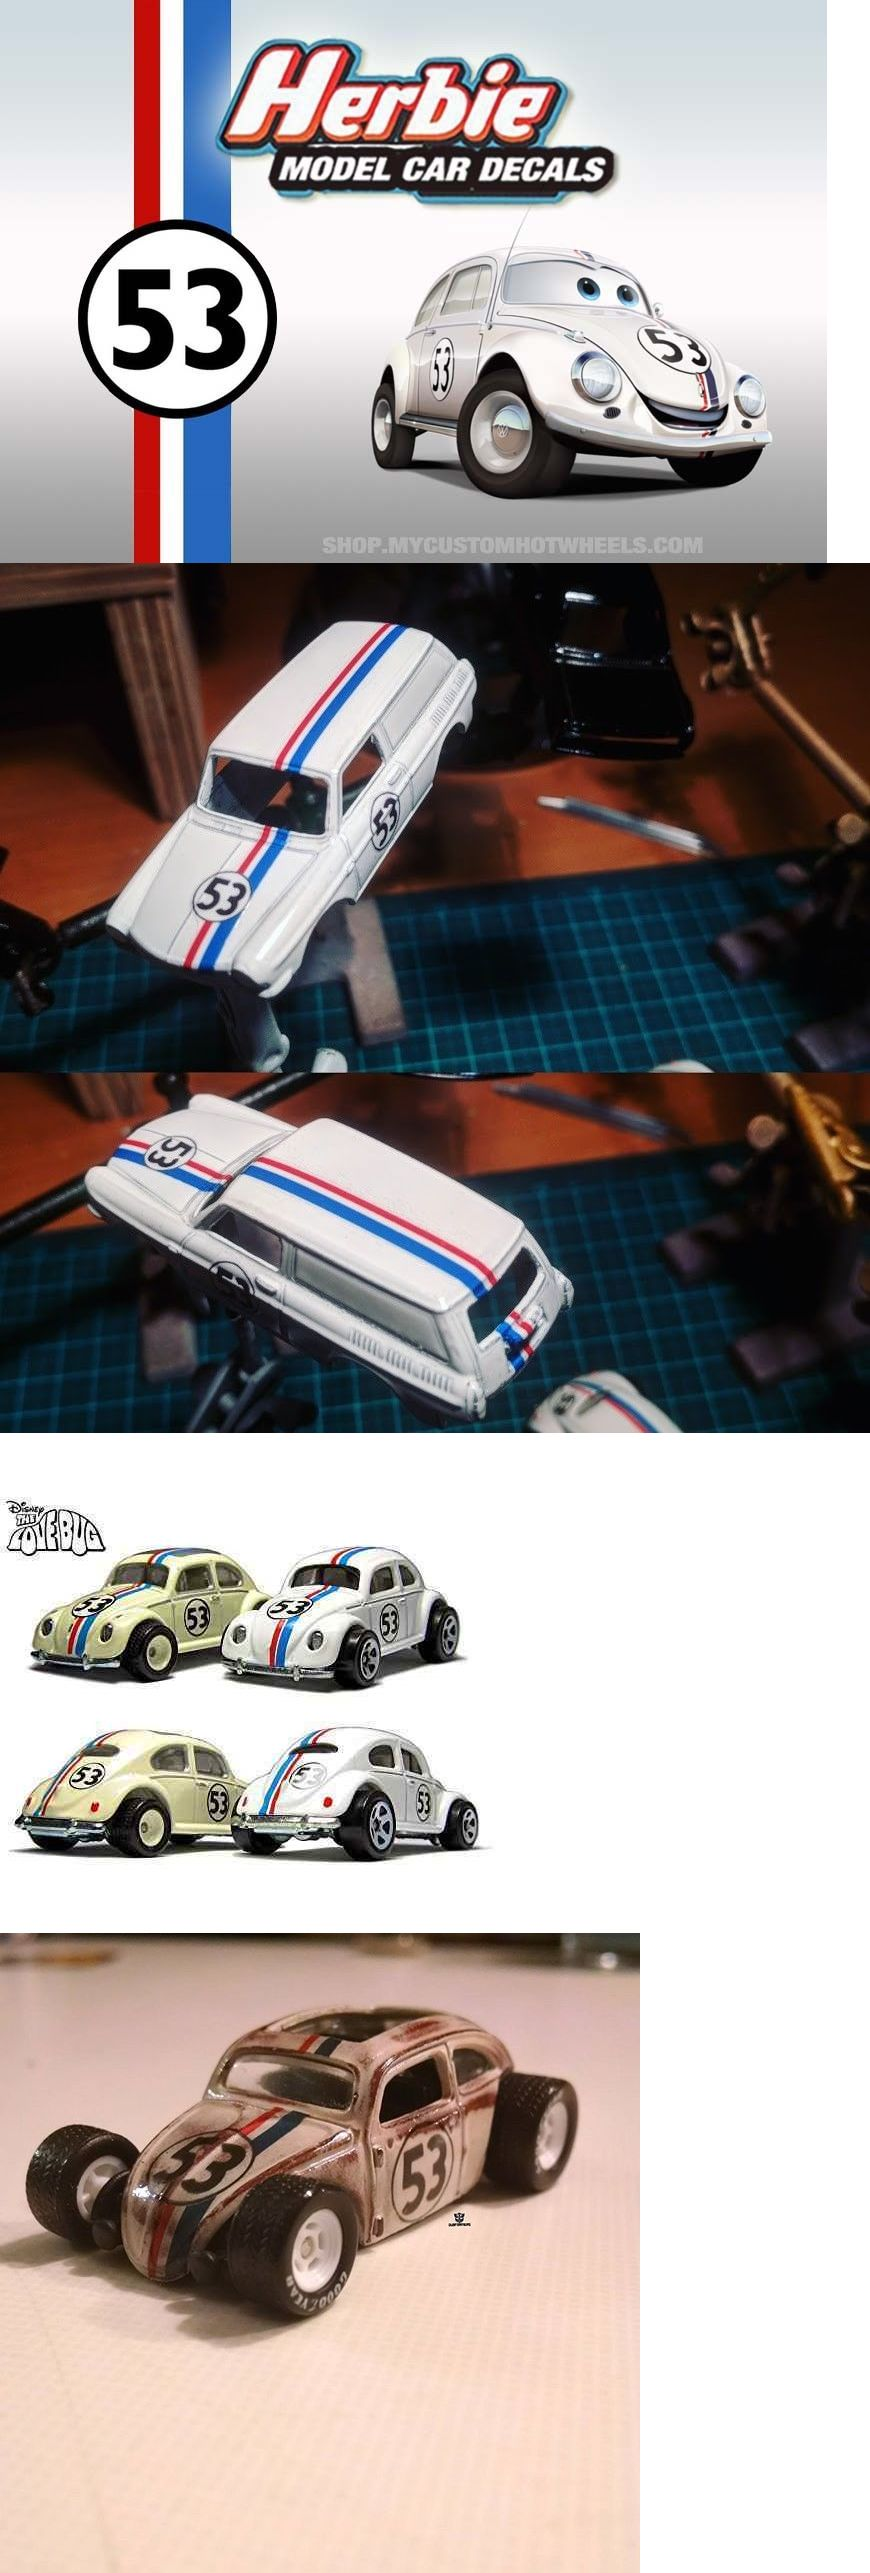 Herbie Decals Waterslide Decals For Model Cars In All Scales From 1 64 To 1 18 Vinyl Wrap Car Custom Car Decals Car Model [ 2573 x 870 Pixel ]